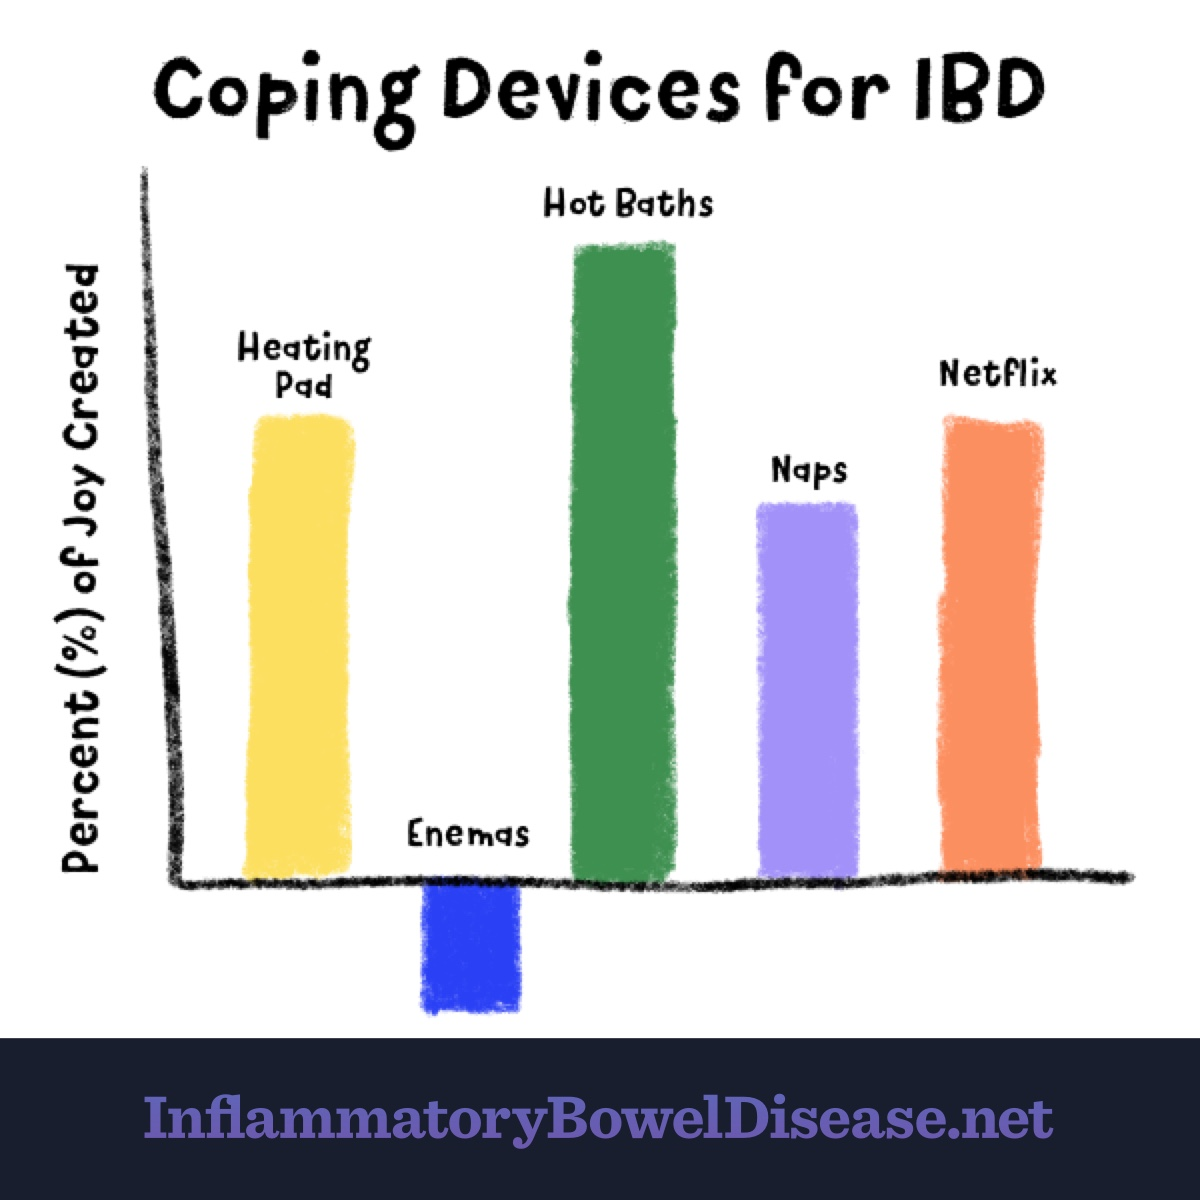 Heating pads, hot baths, naps, and Netflix are all positive coping devices for IBD, whereas enemas are in the negatives.